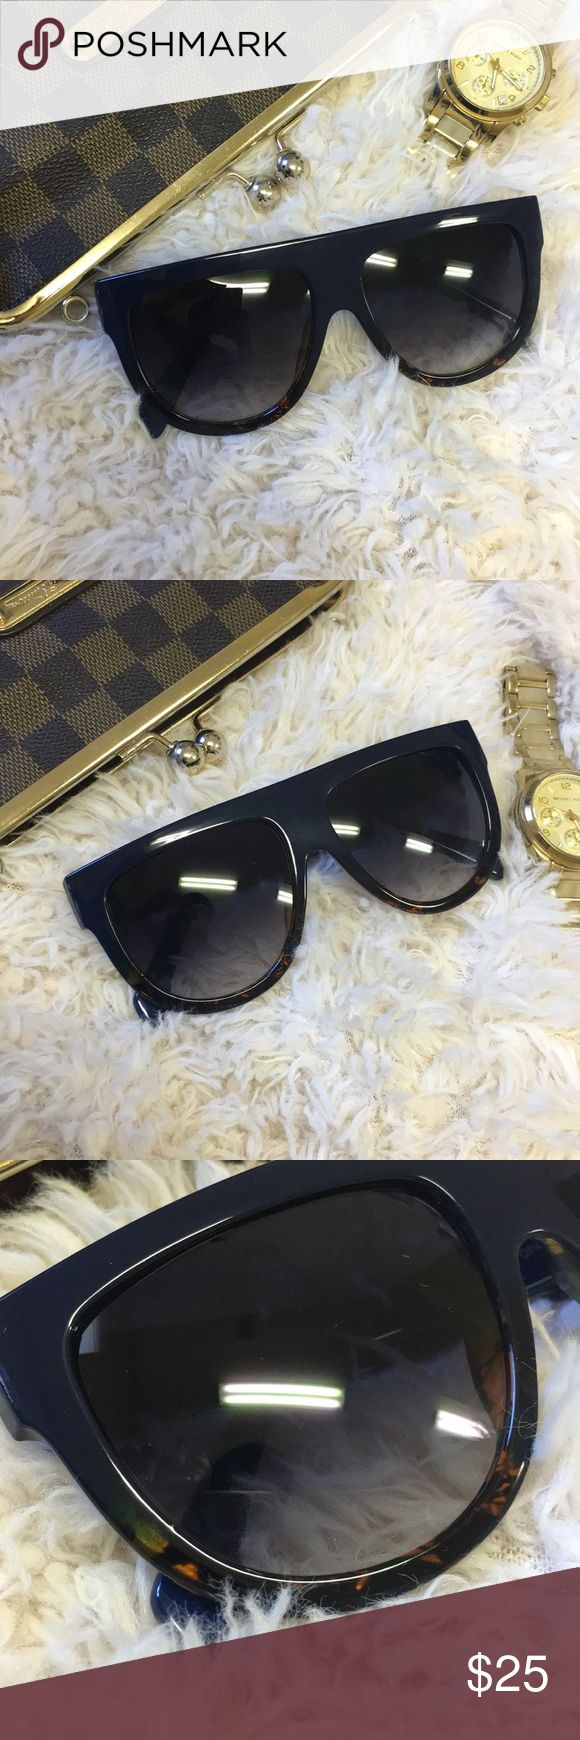 """""""Dark and Rich"""" Flat top Sunglasses .Buy with confidence!  I am a 100% possitive rated seller with 160+ combined great reviews.  •••••••••••••••••••••••••• Make an OFFER ⬇️⬇️⬇️⬇ Bundle to Save!  ••••••••••••••••••••••••• ABOUT THIS PRODUCT:  Similar to Kim Kardashian & Kylie Jenner Celine's • Navy Blue at the top \ Tortoise at the bottom  • UV Protective •Use for:sunny occasions •Condition: Brand New •Shipping: Ships within 2 days! Check our oversized sunglasses. cat eye sunglasses and…"""